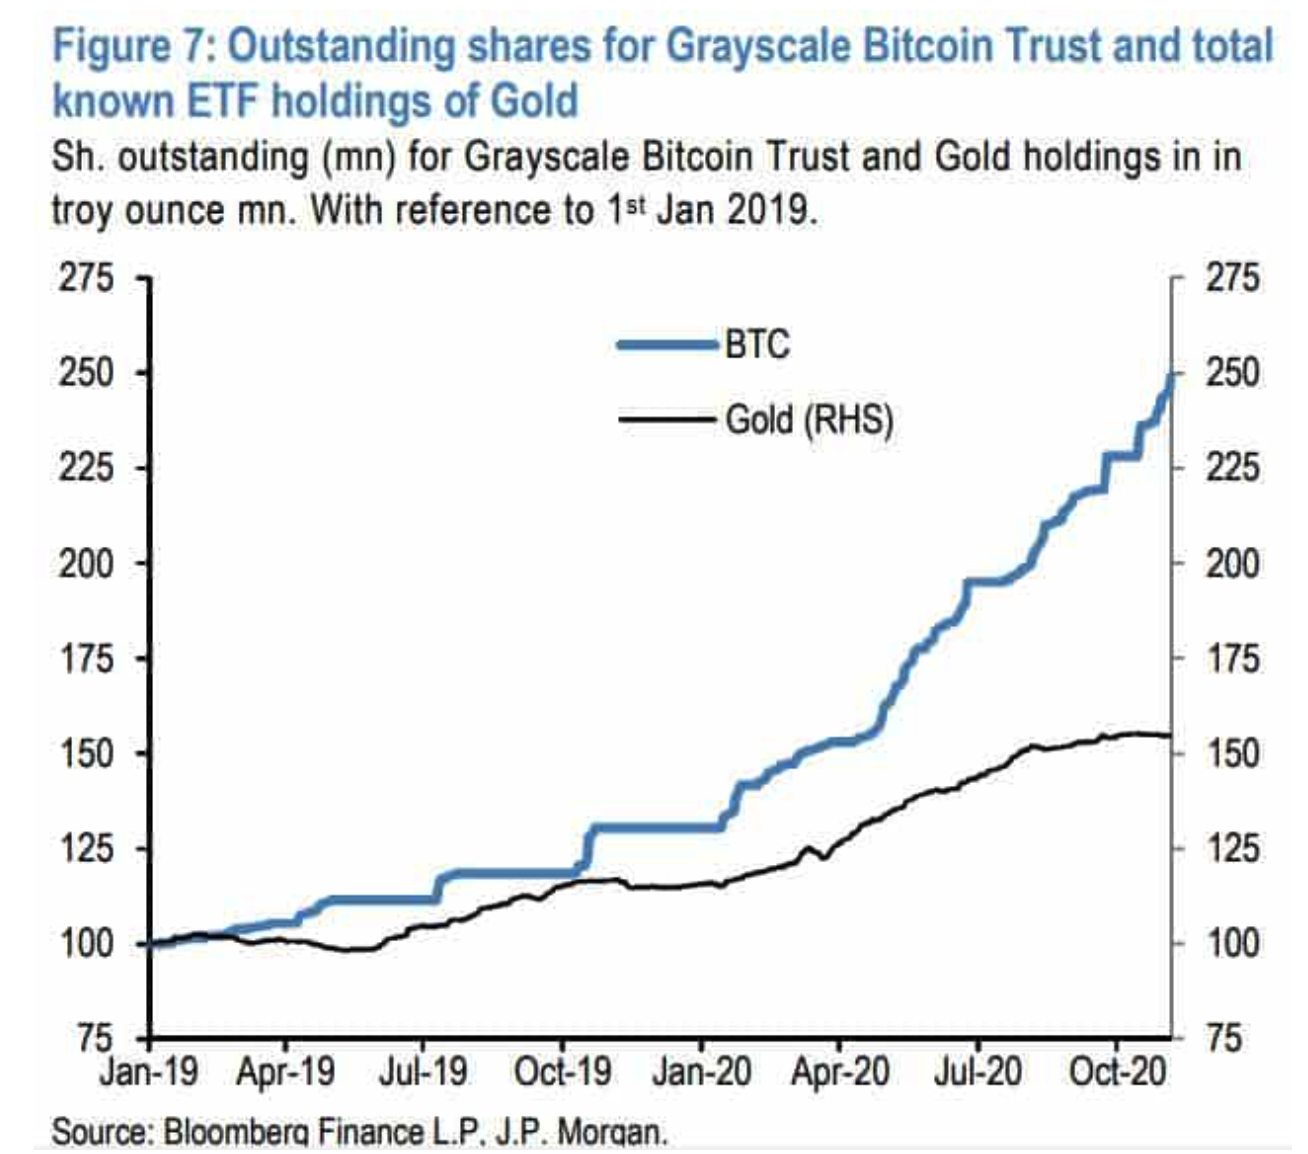 jpmorgan-report-institutional-investors-have-been-turning-more-to-bitcoin-rather-than-gold-lately